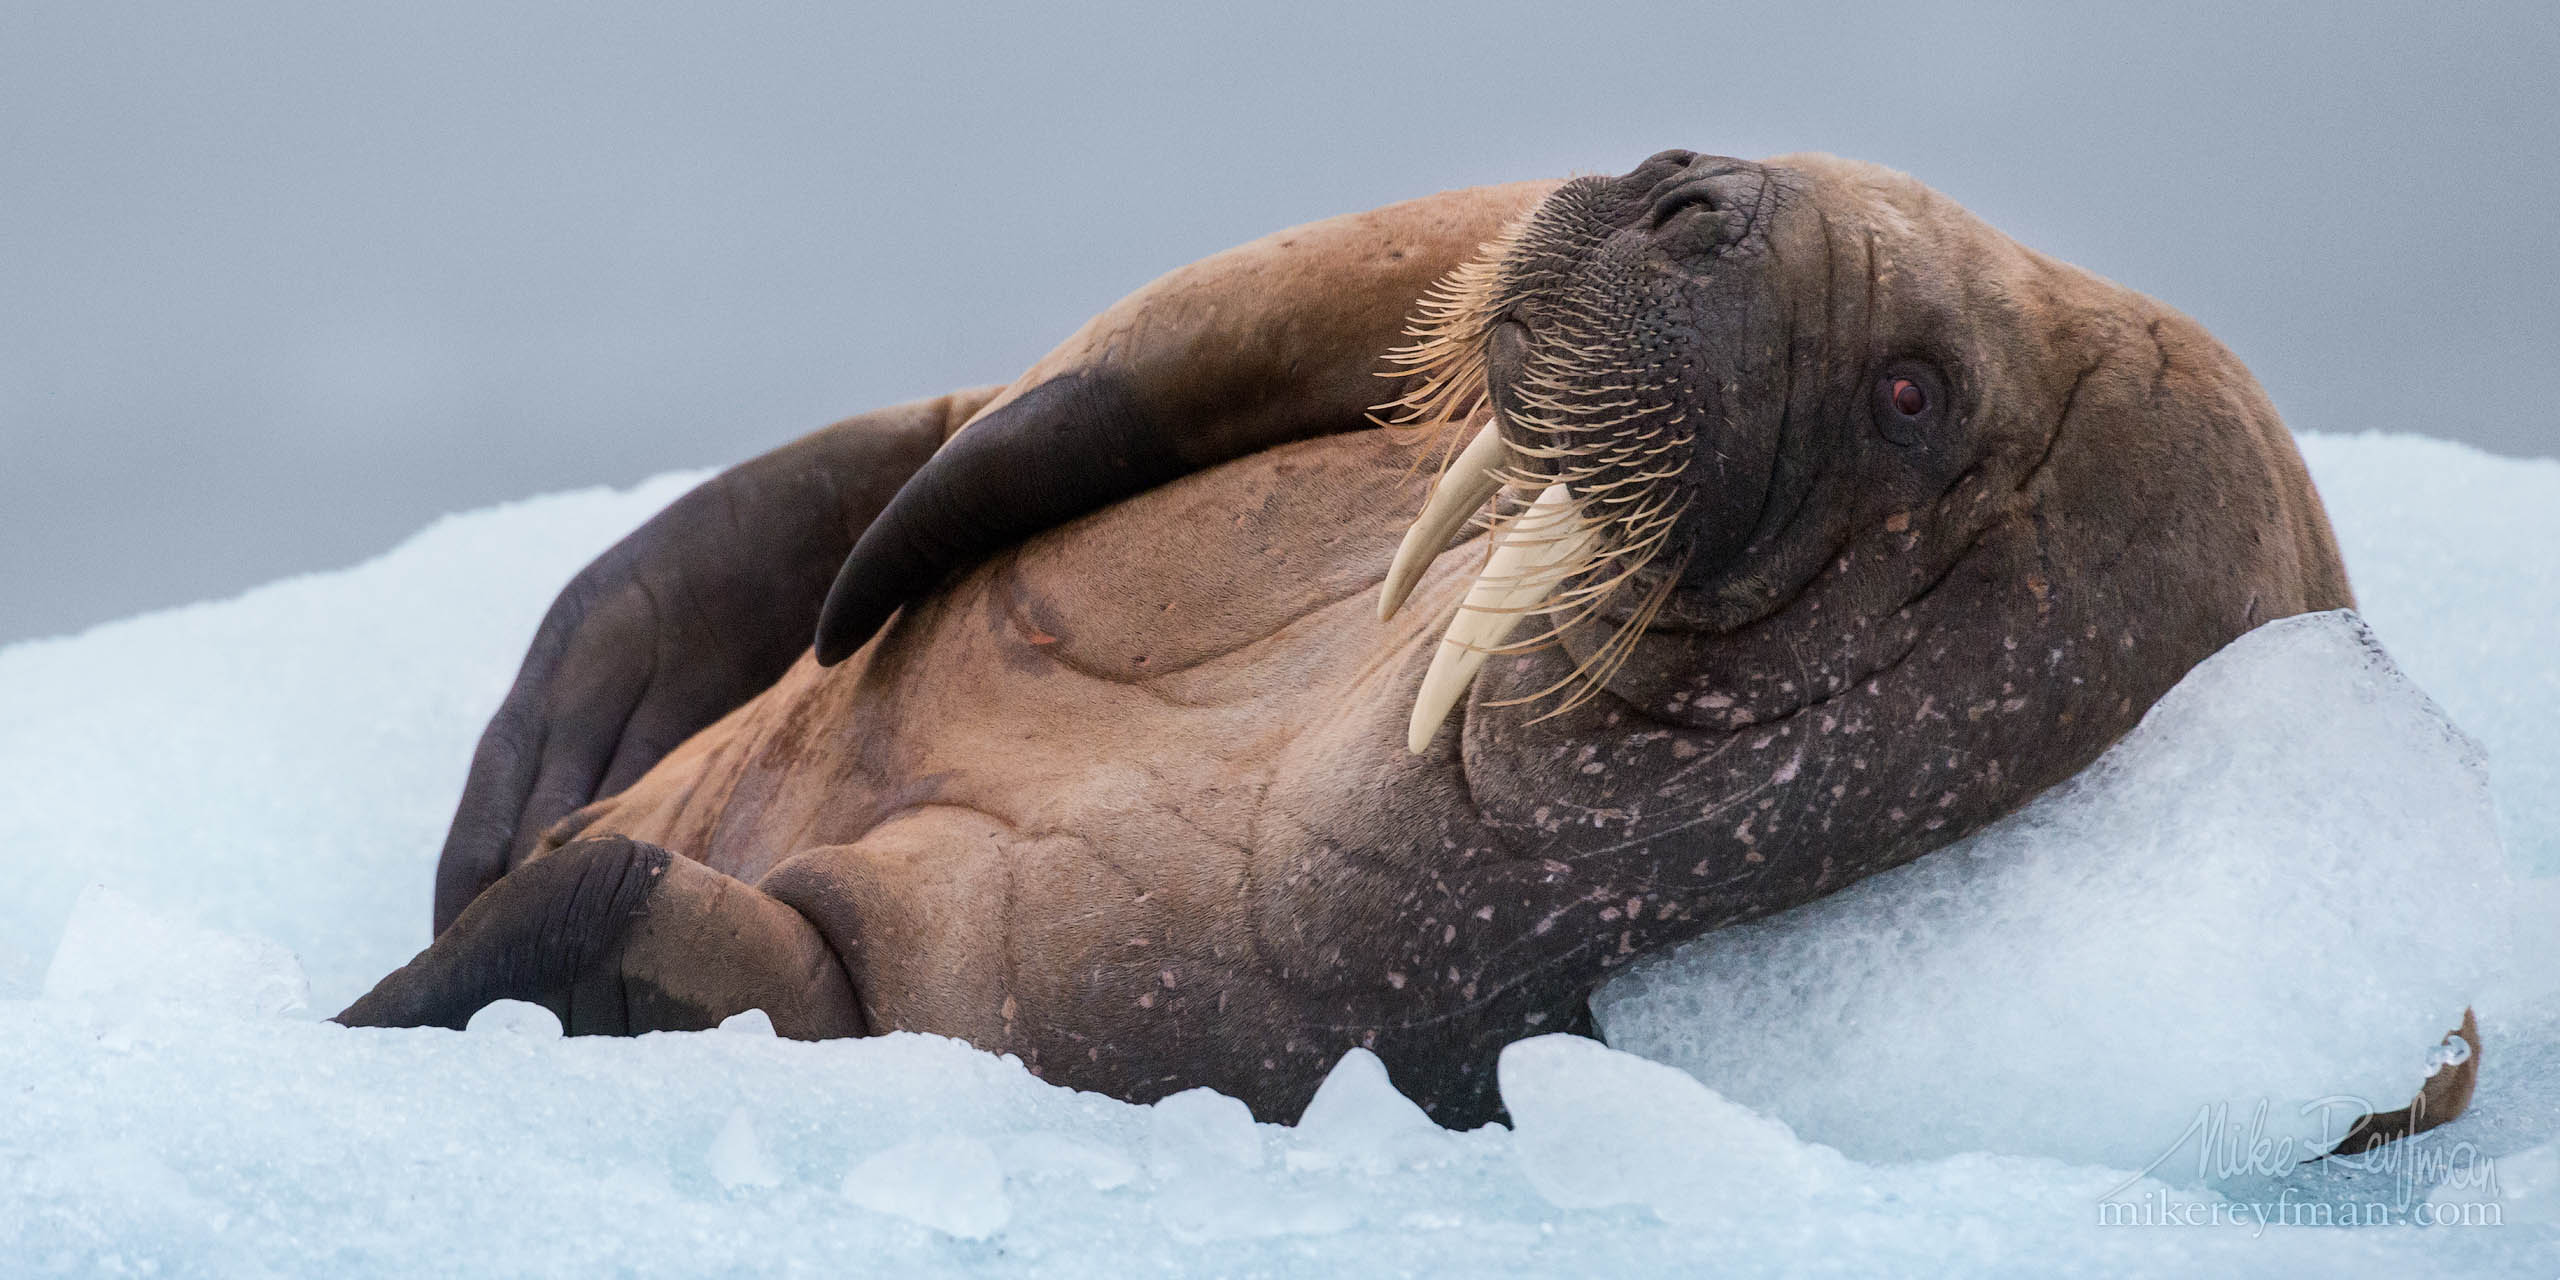 Laid-back. Very relaxed walrus resting on an ice floe in Svalbard (Spitsbergen) P12-MR4SA3496 - Selected panoramic images with 2:1 aspect ratio - Mike Reyfman Photography